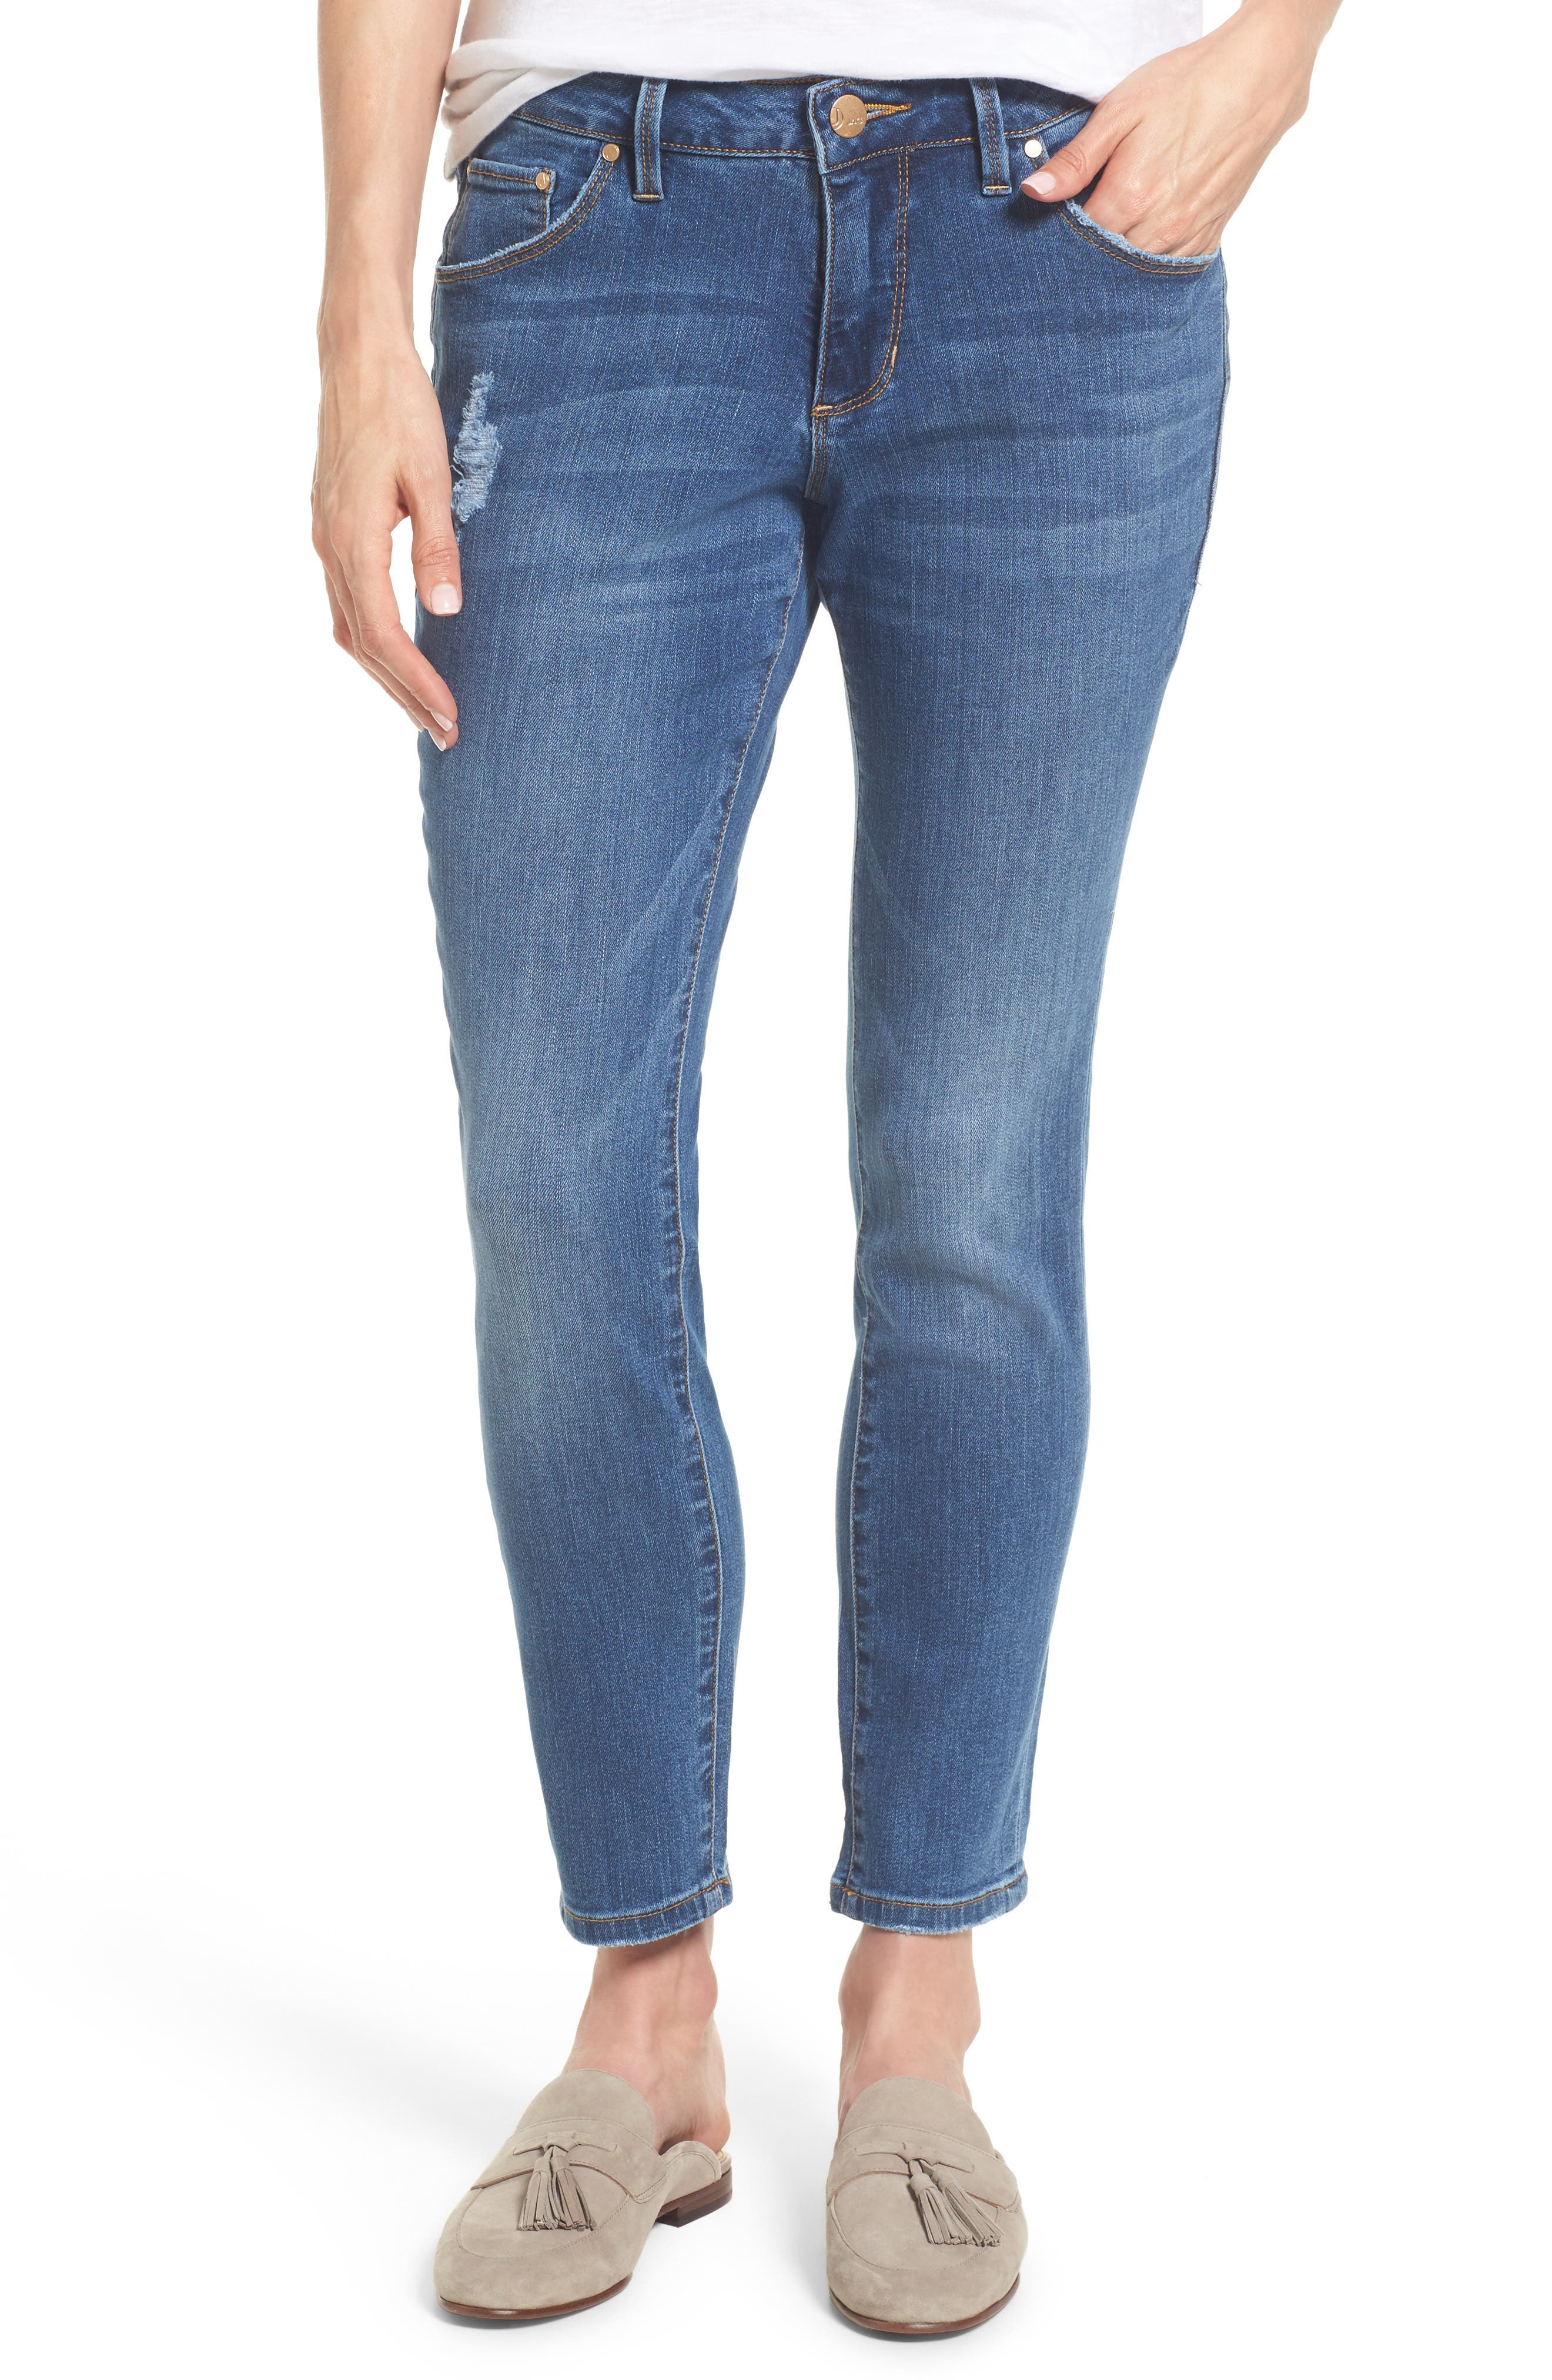 Alternate Image 1 Selected - Jag Jeans Mera Skinny Ankle Jeans (Mineral Wash)